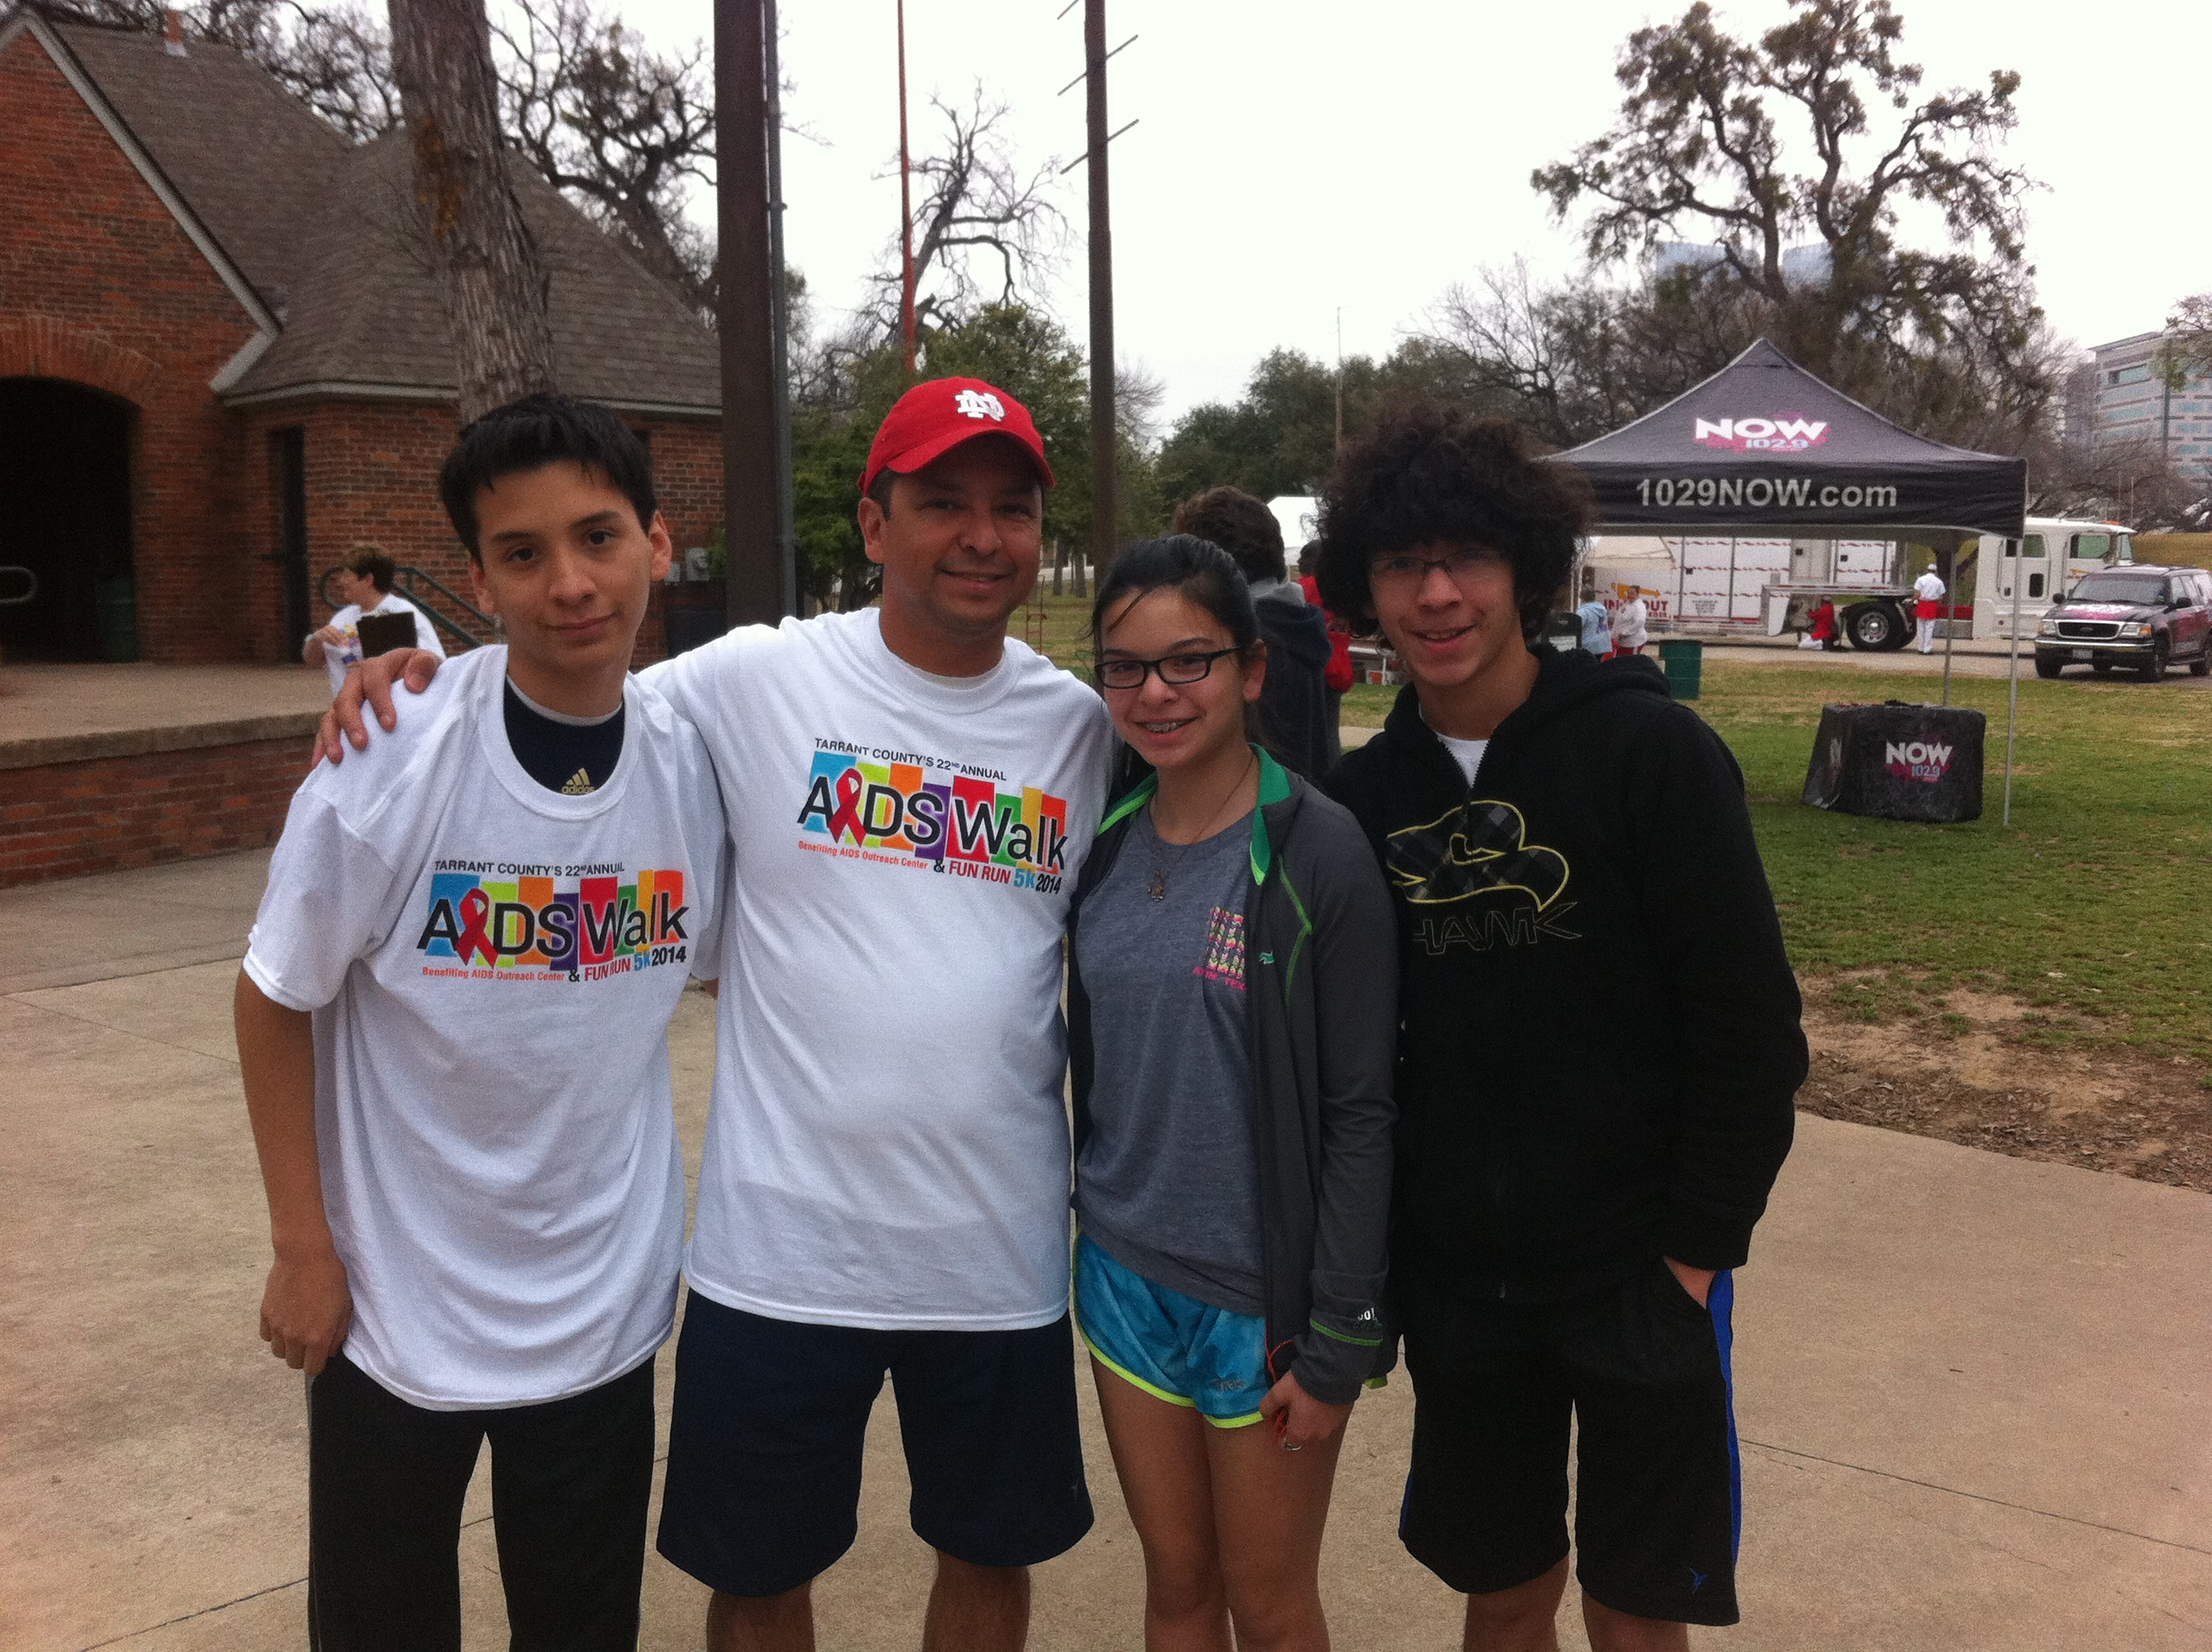 With my kids at the 2014 Walk event (formerly known as AIDS Walk)